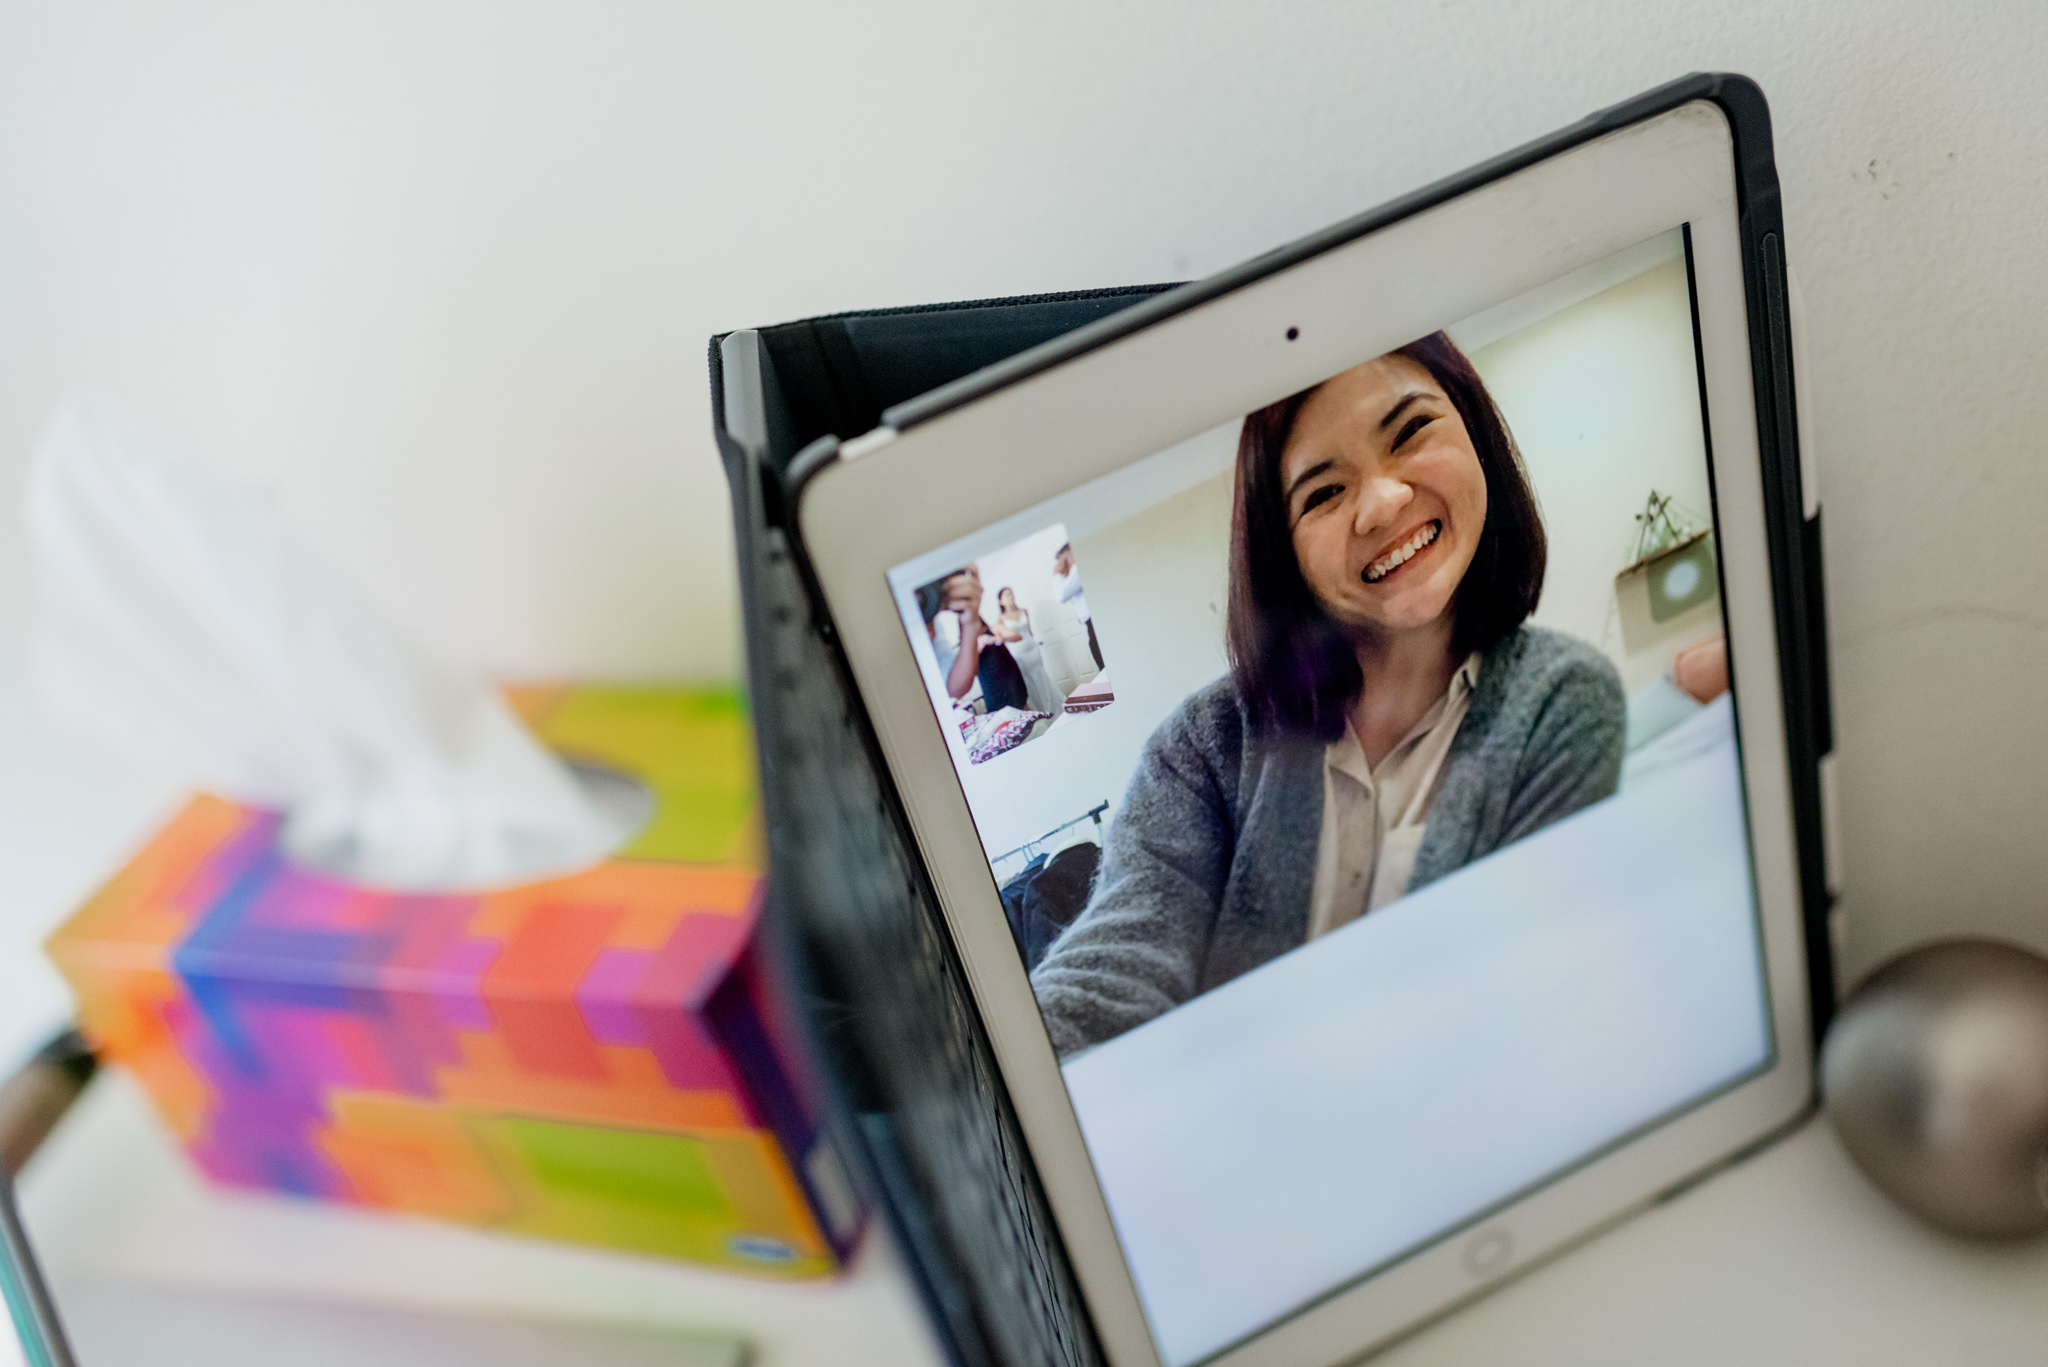 A smiling woman video calling on an Ipad placed next to a tissue box